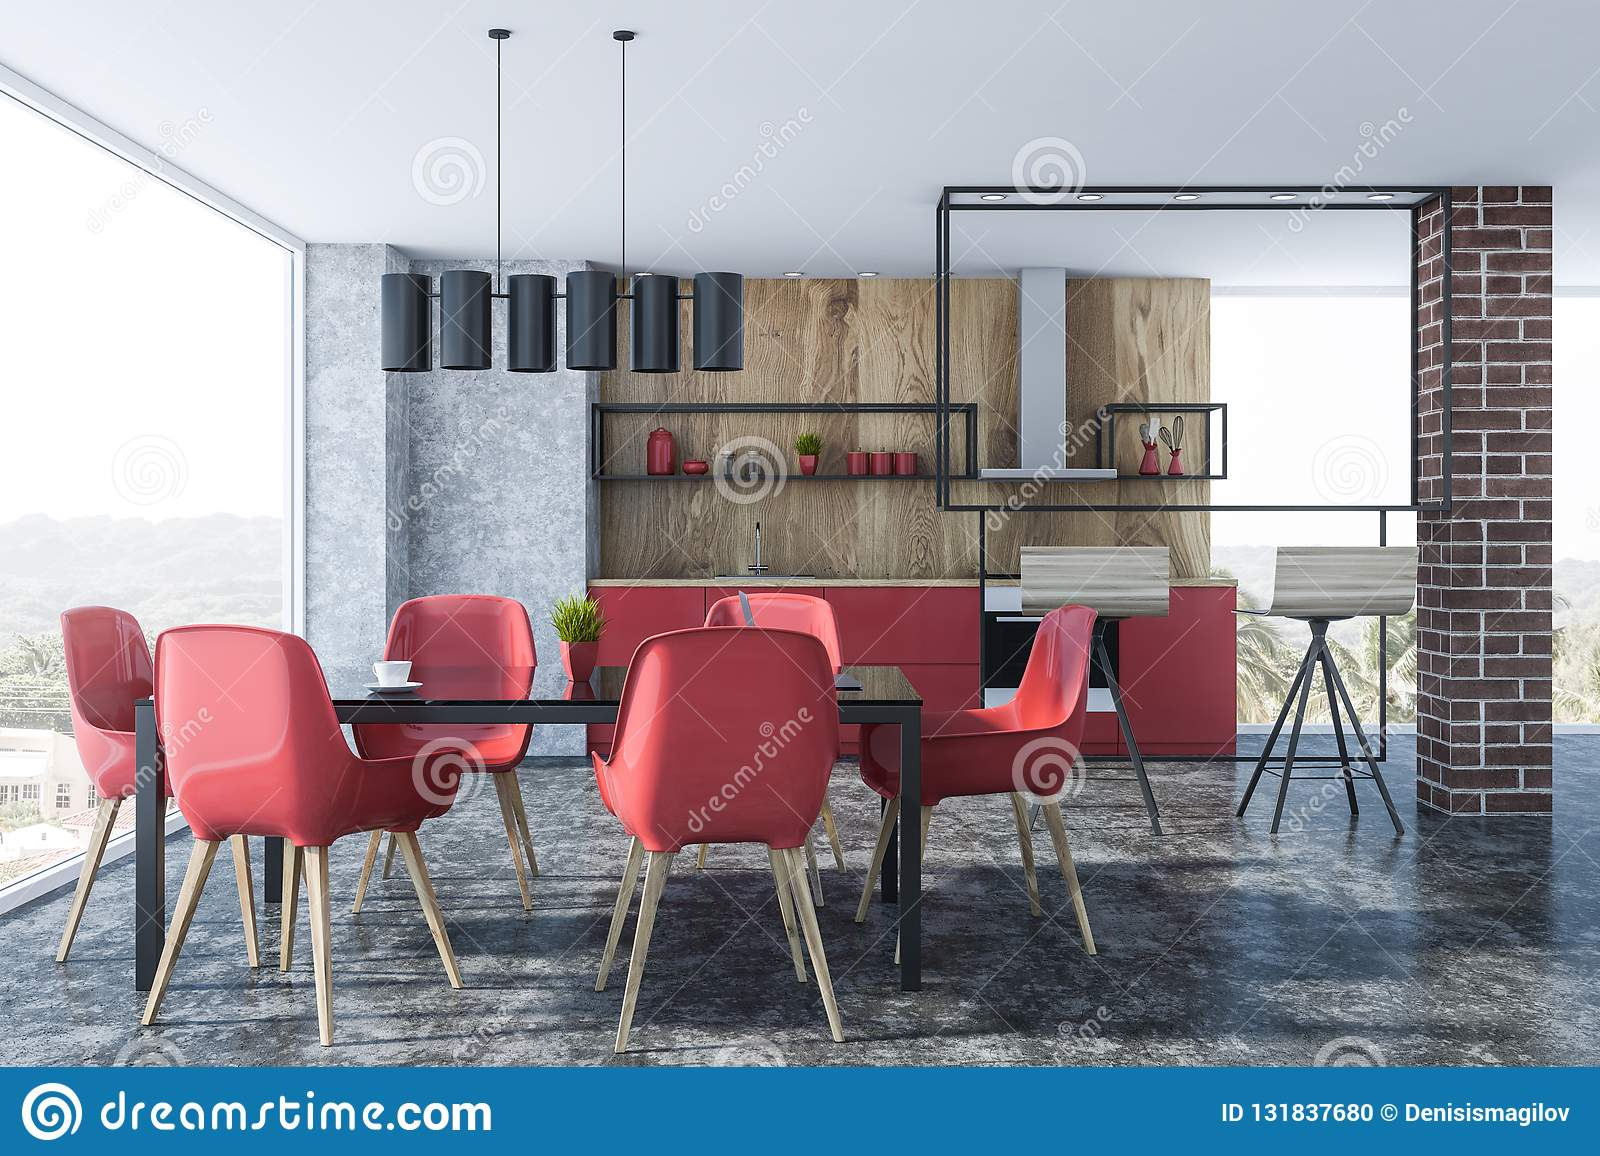 Red Chairs Dining Room Interior Stock Illustration Illustration Of Furniture Chair 131837680